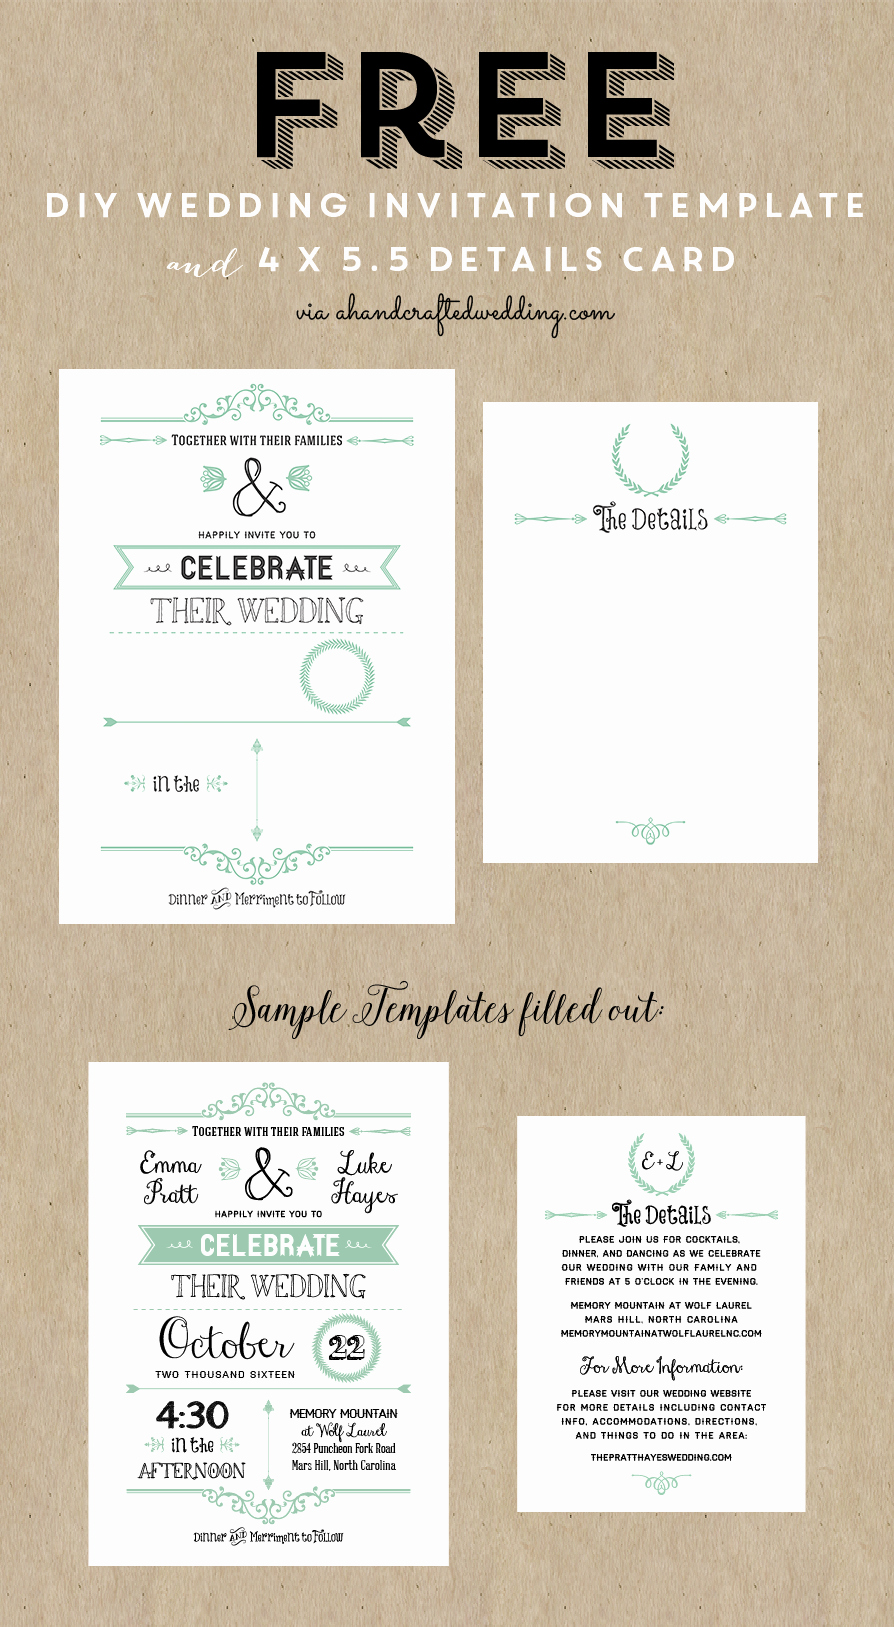 Wedding Invitation Ideas Pinterest Awesome Best 25 Free Wedding Invitation Templates Ideas On